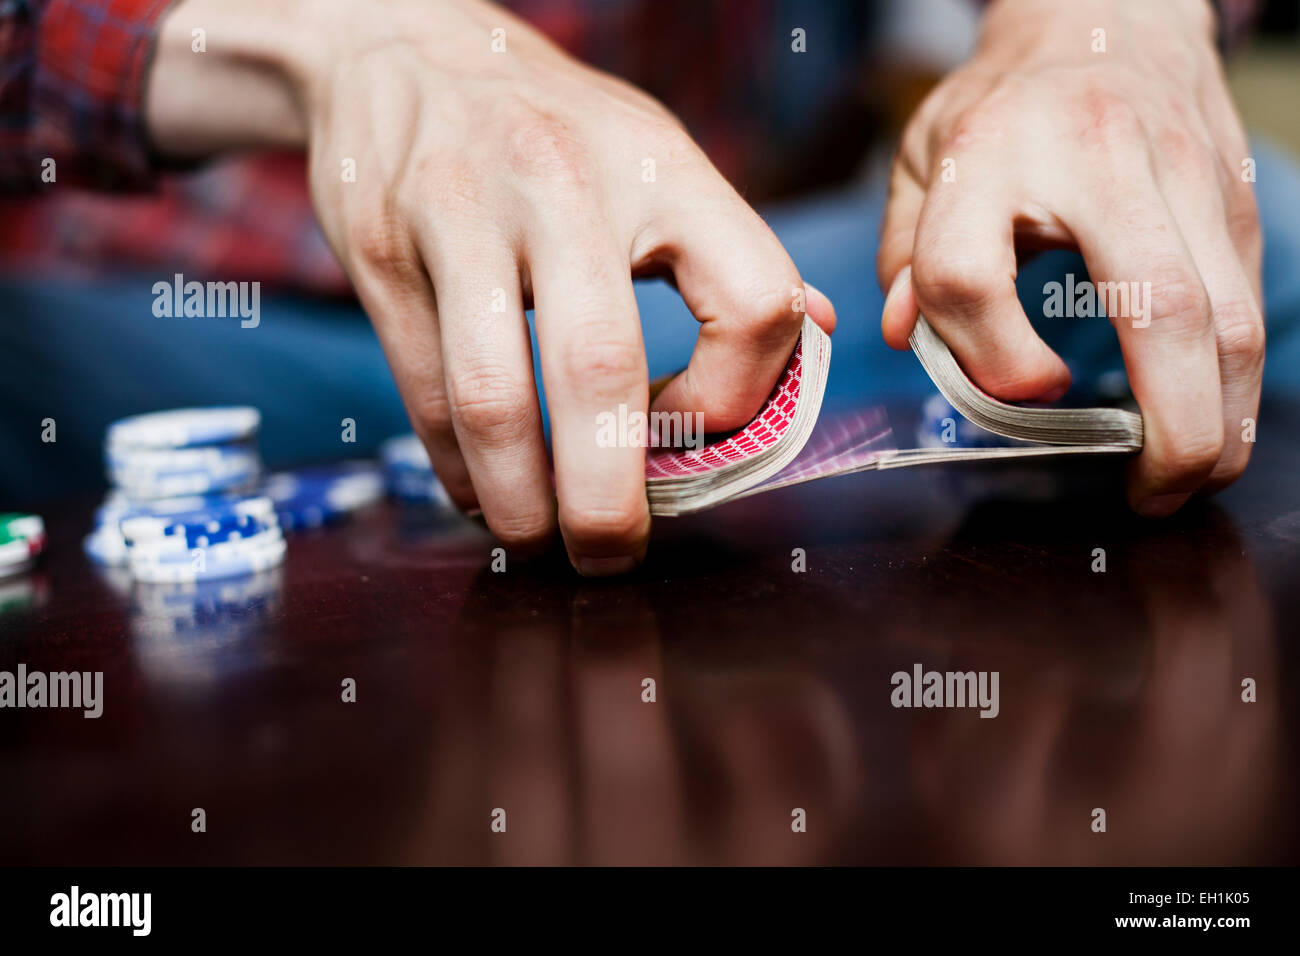 Cropped image of man's hands mixing and shuffling deck of cards - Stock Image